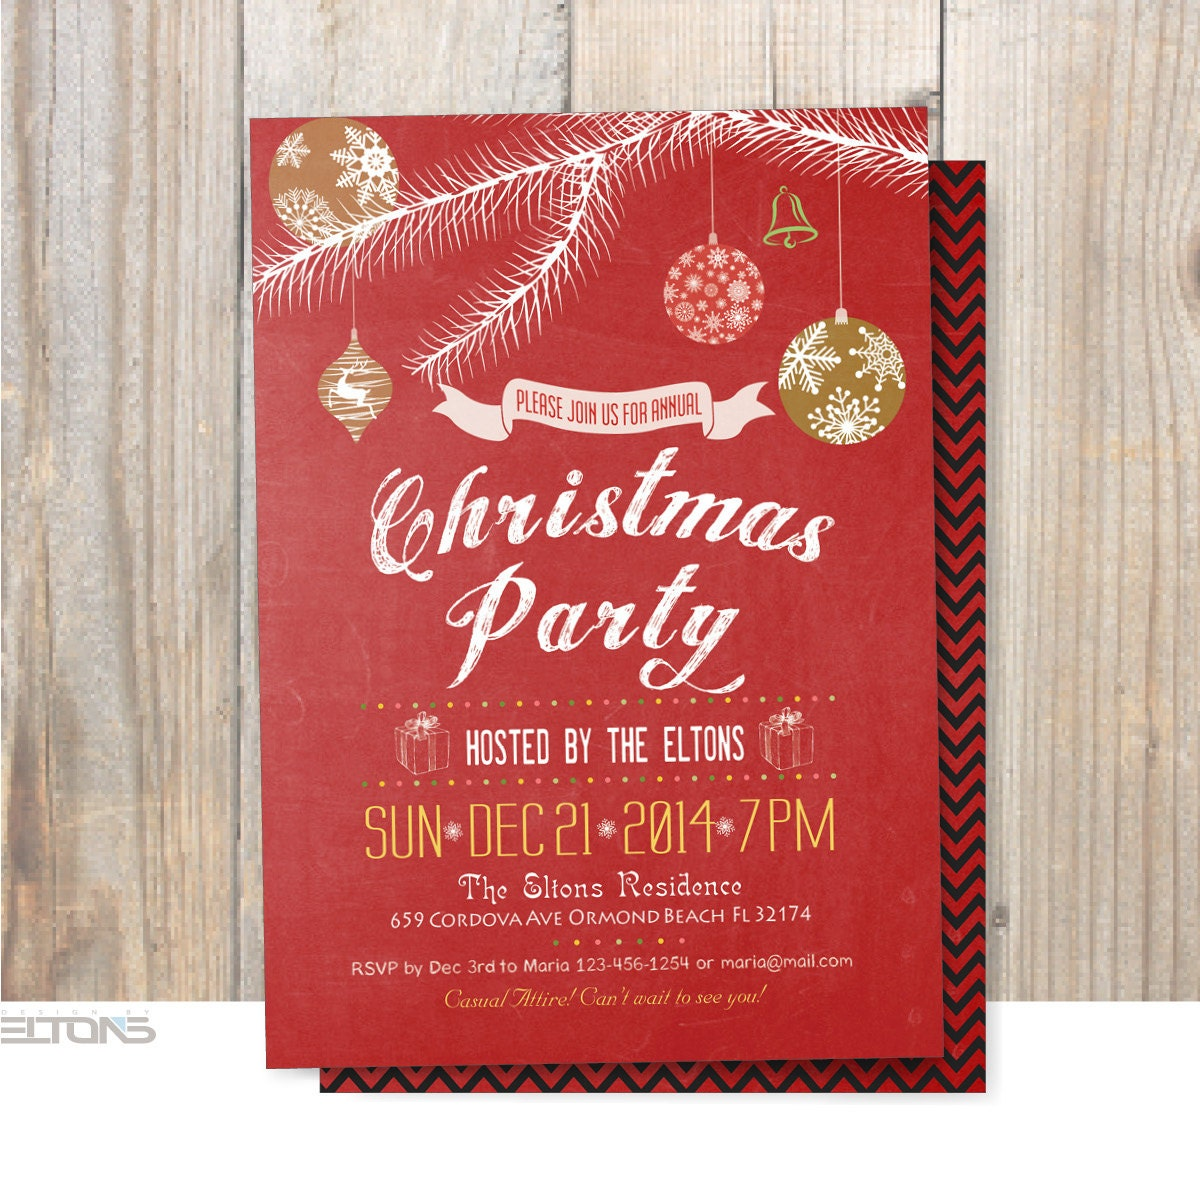 Christmas Party Invitation DIY Christmas Decorations Double